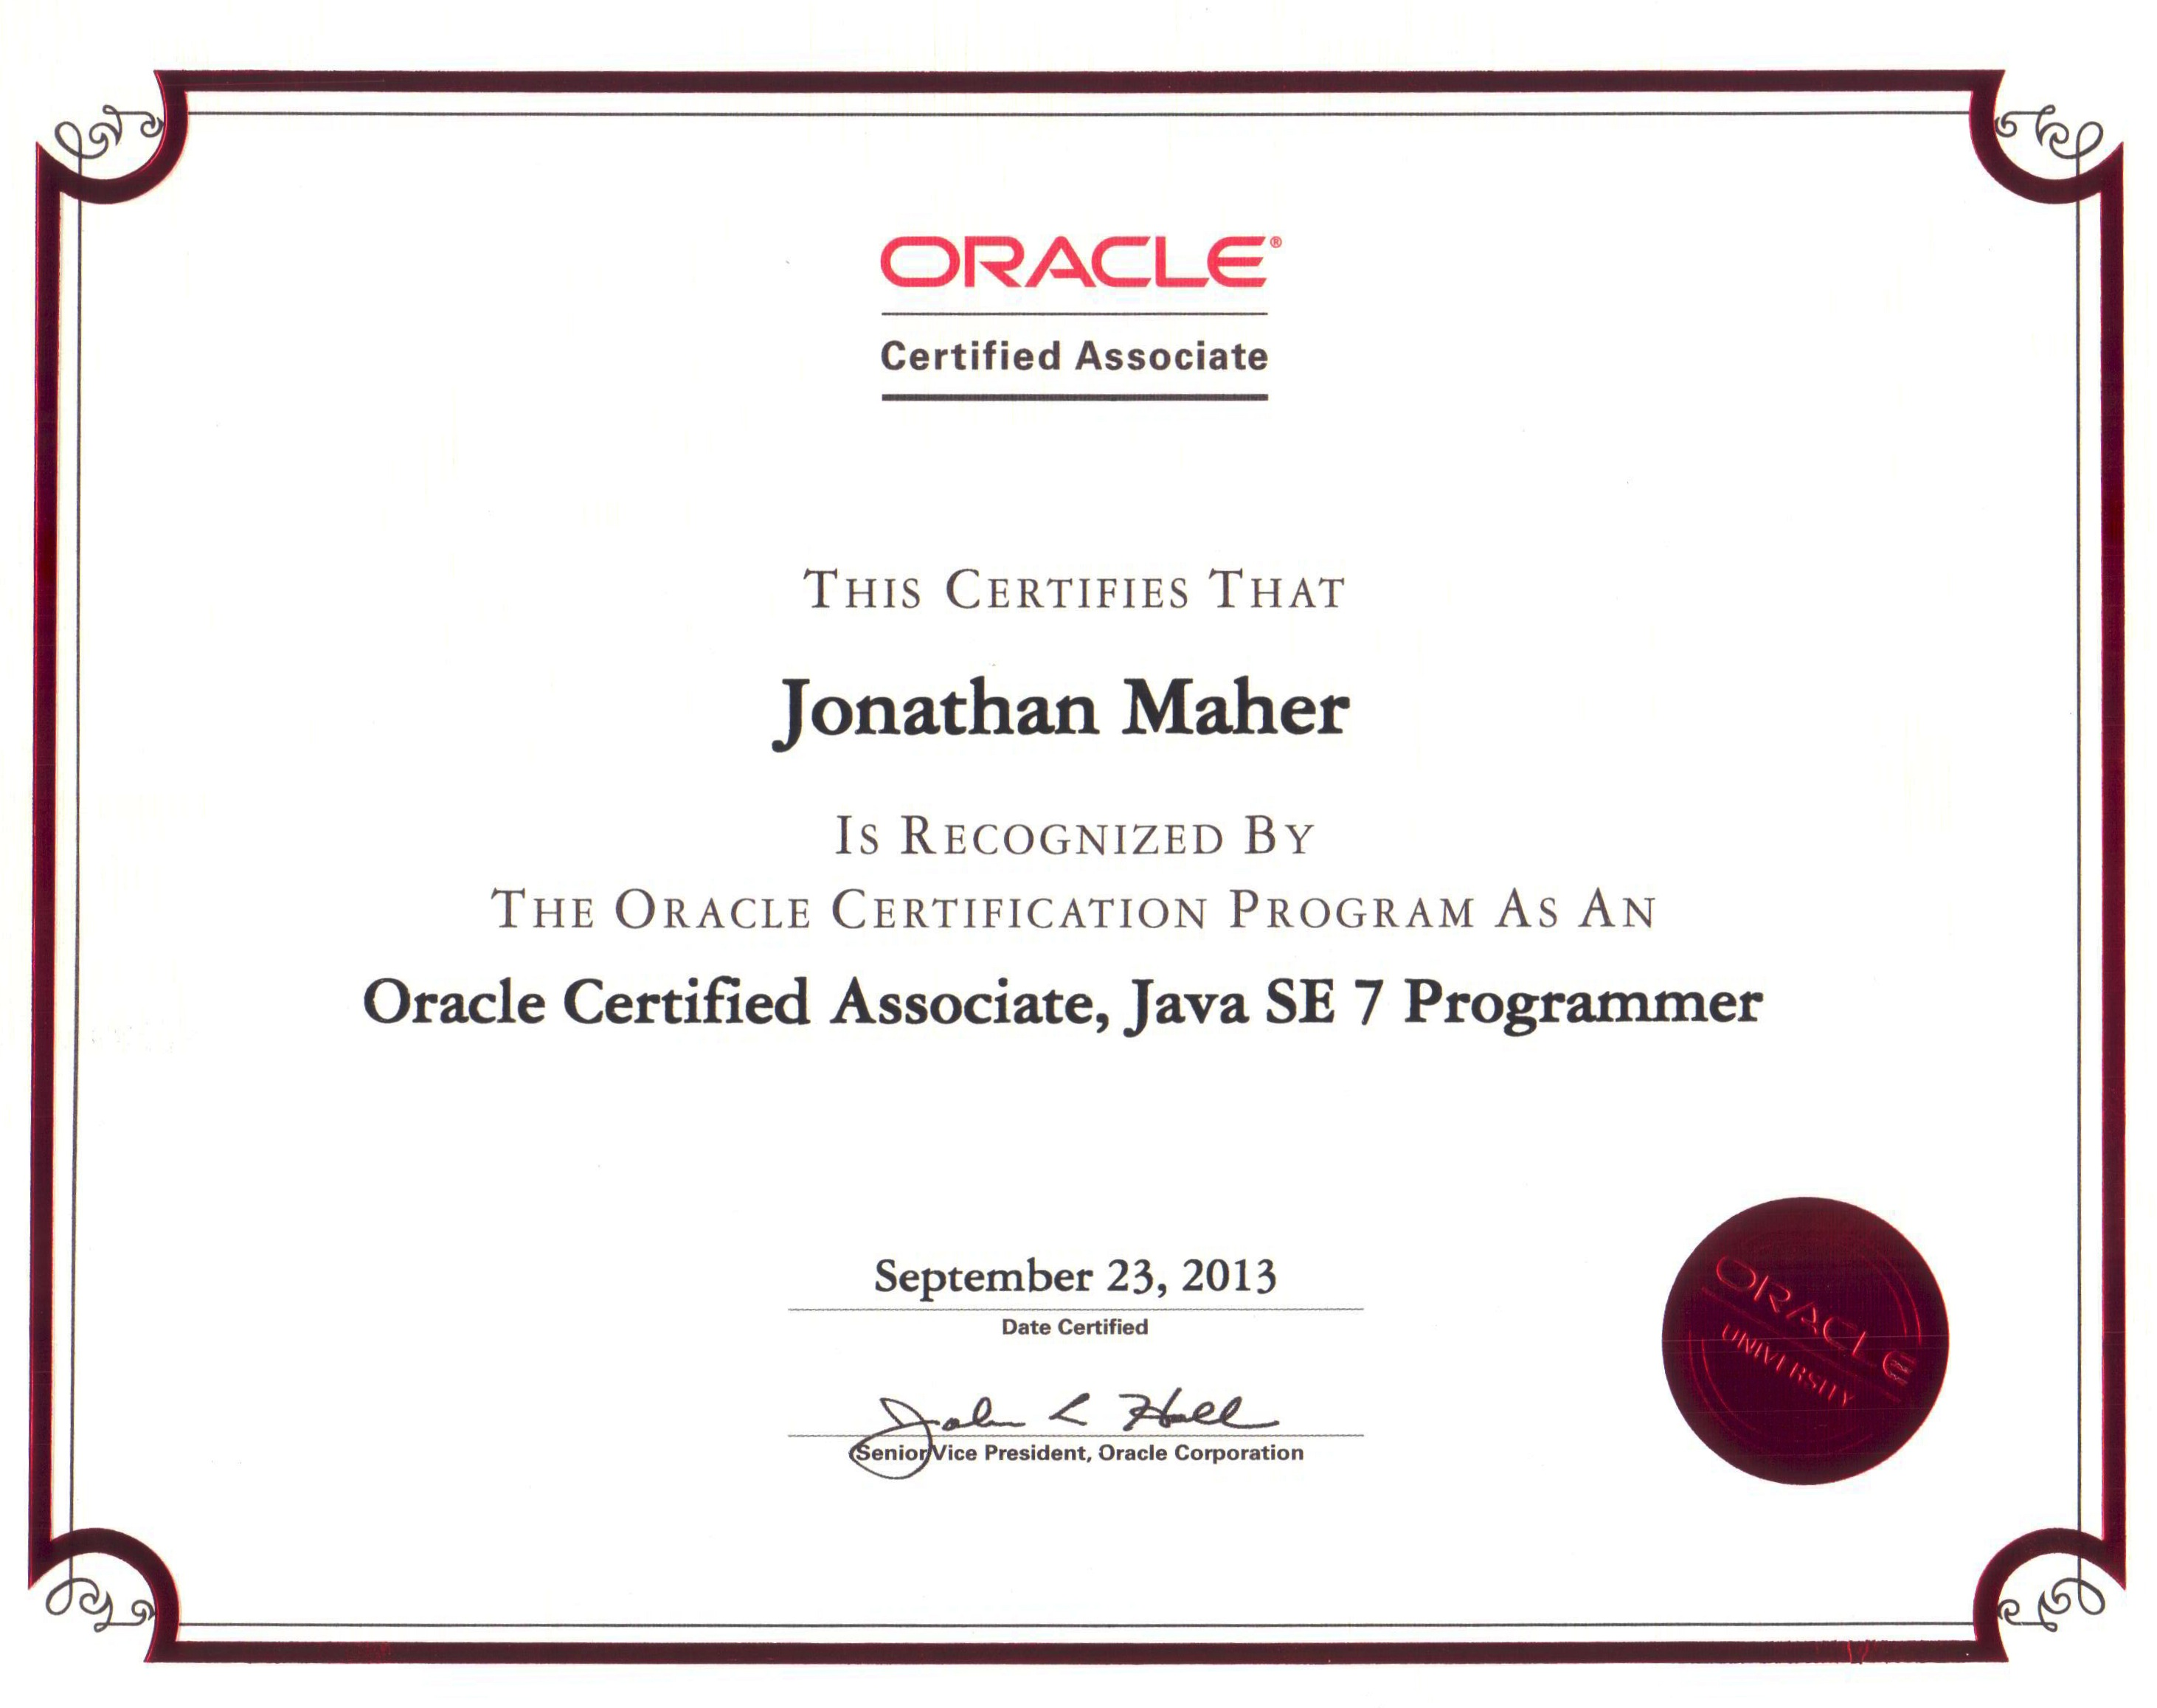 java oracle certification programming certifications bannon maher jonathan certified